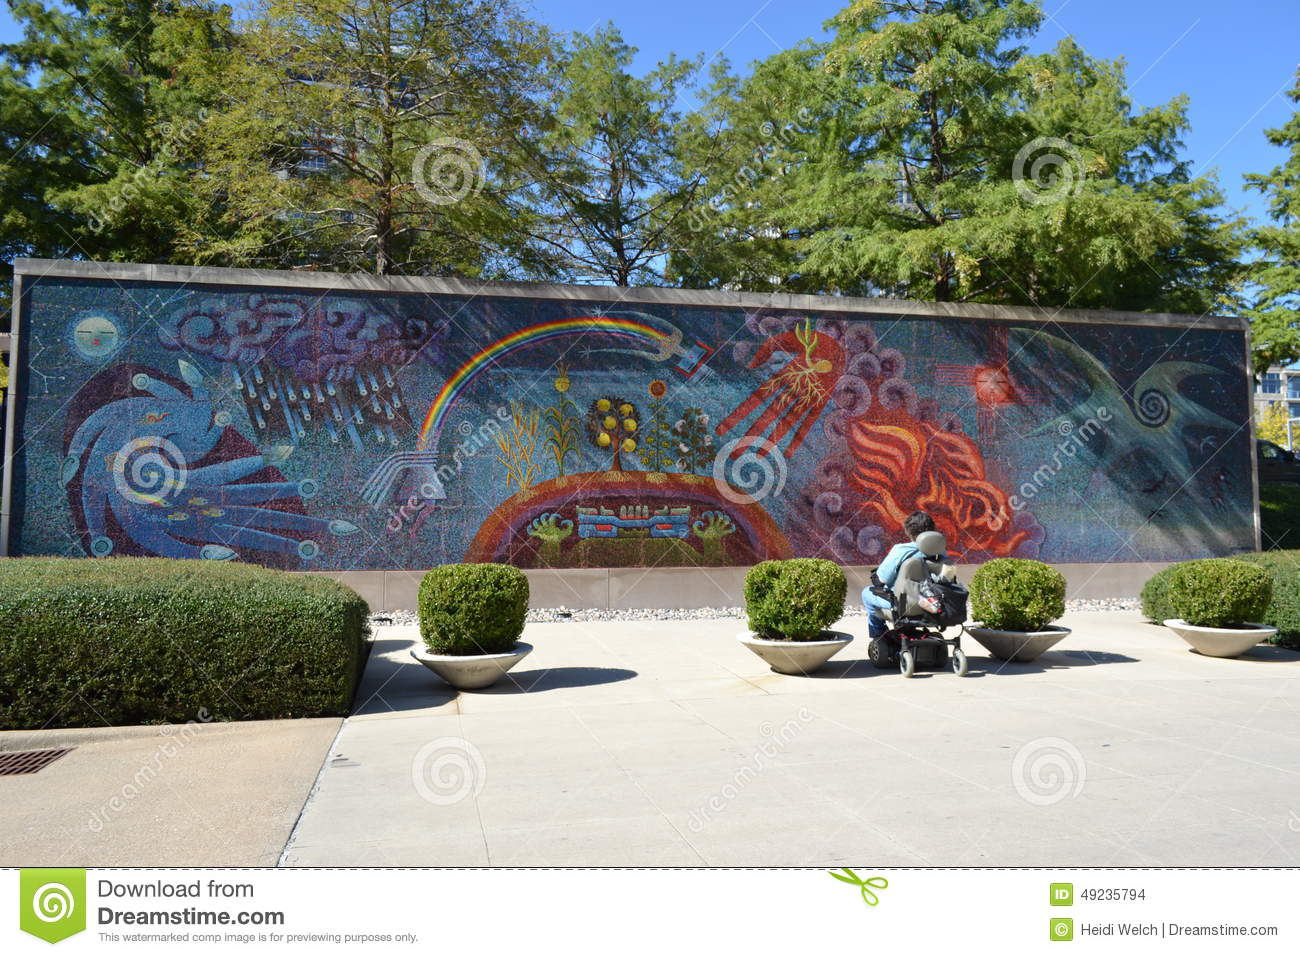 Full wall mural editorial stock image image 49235794 for Dallas mural artists